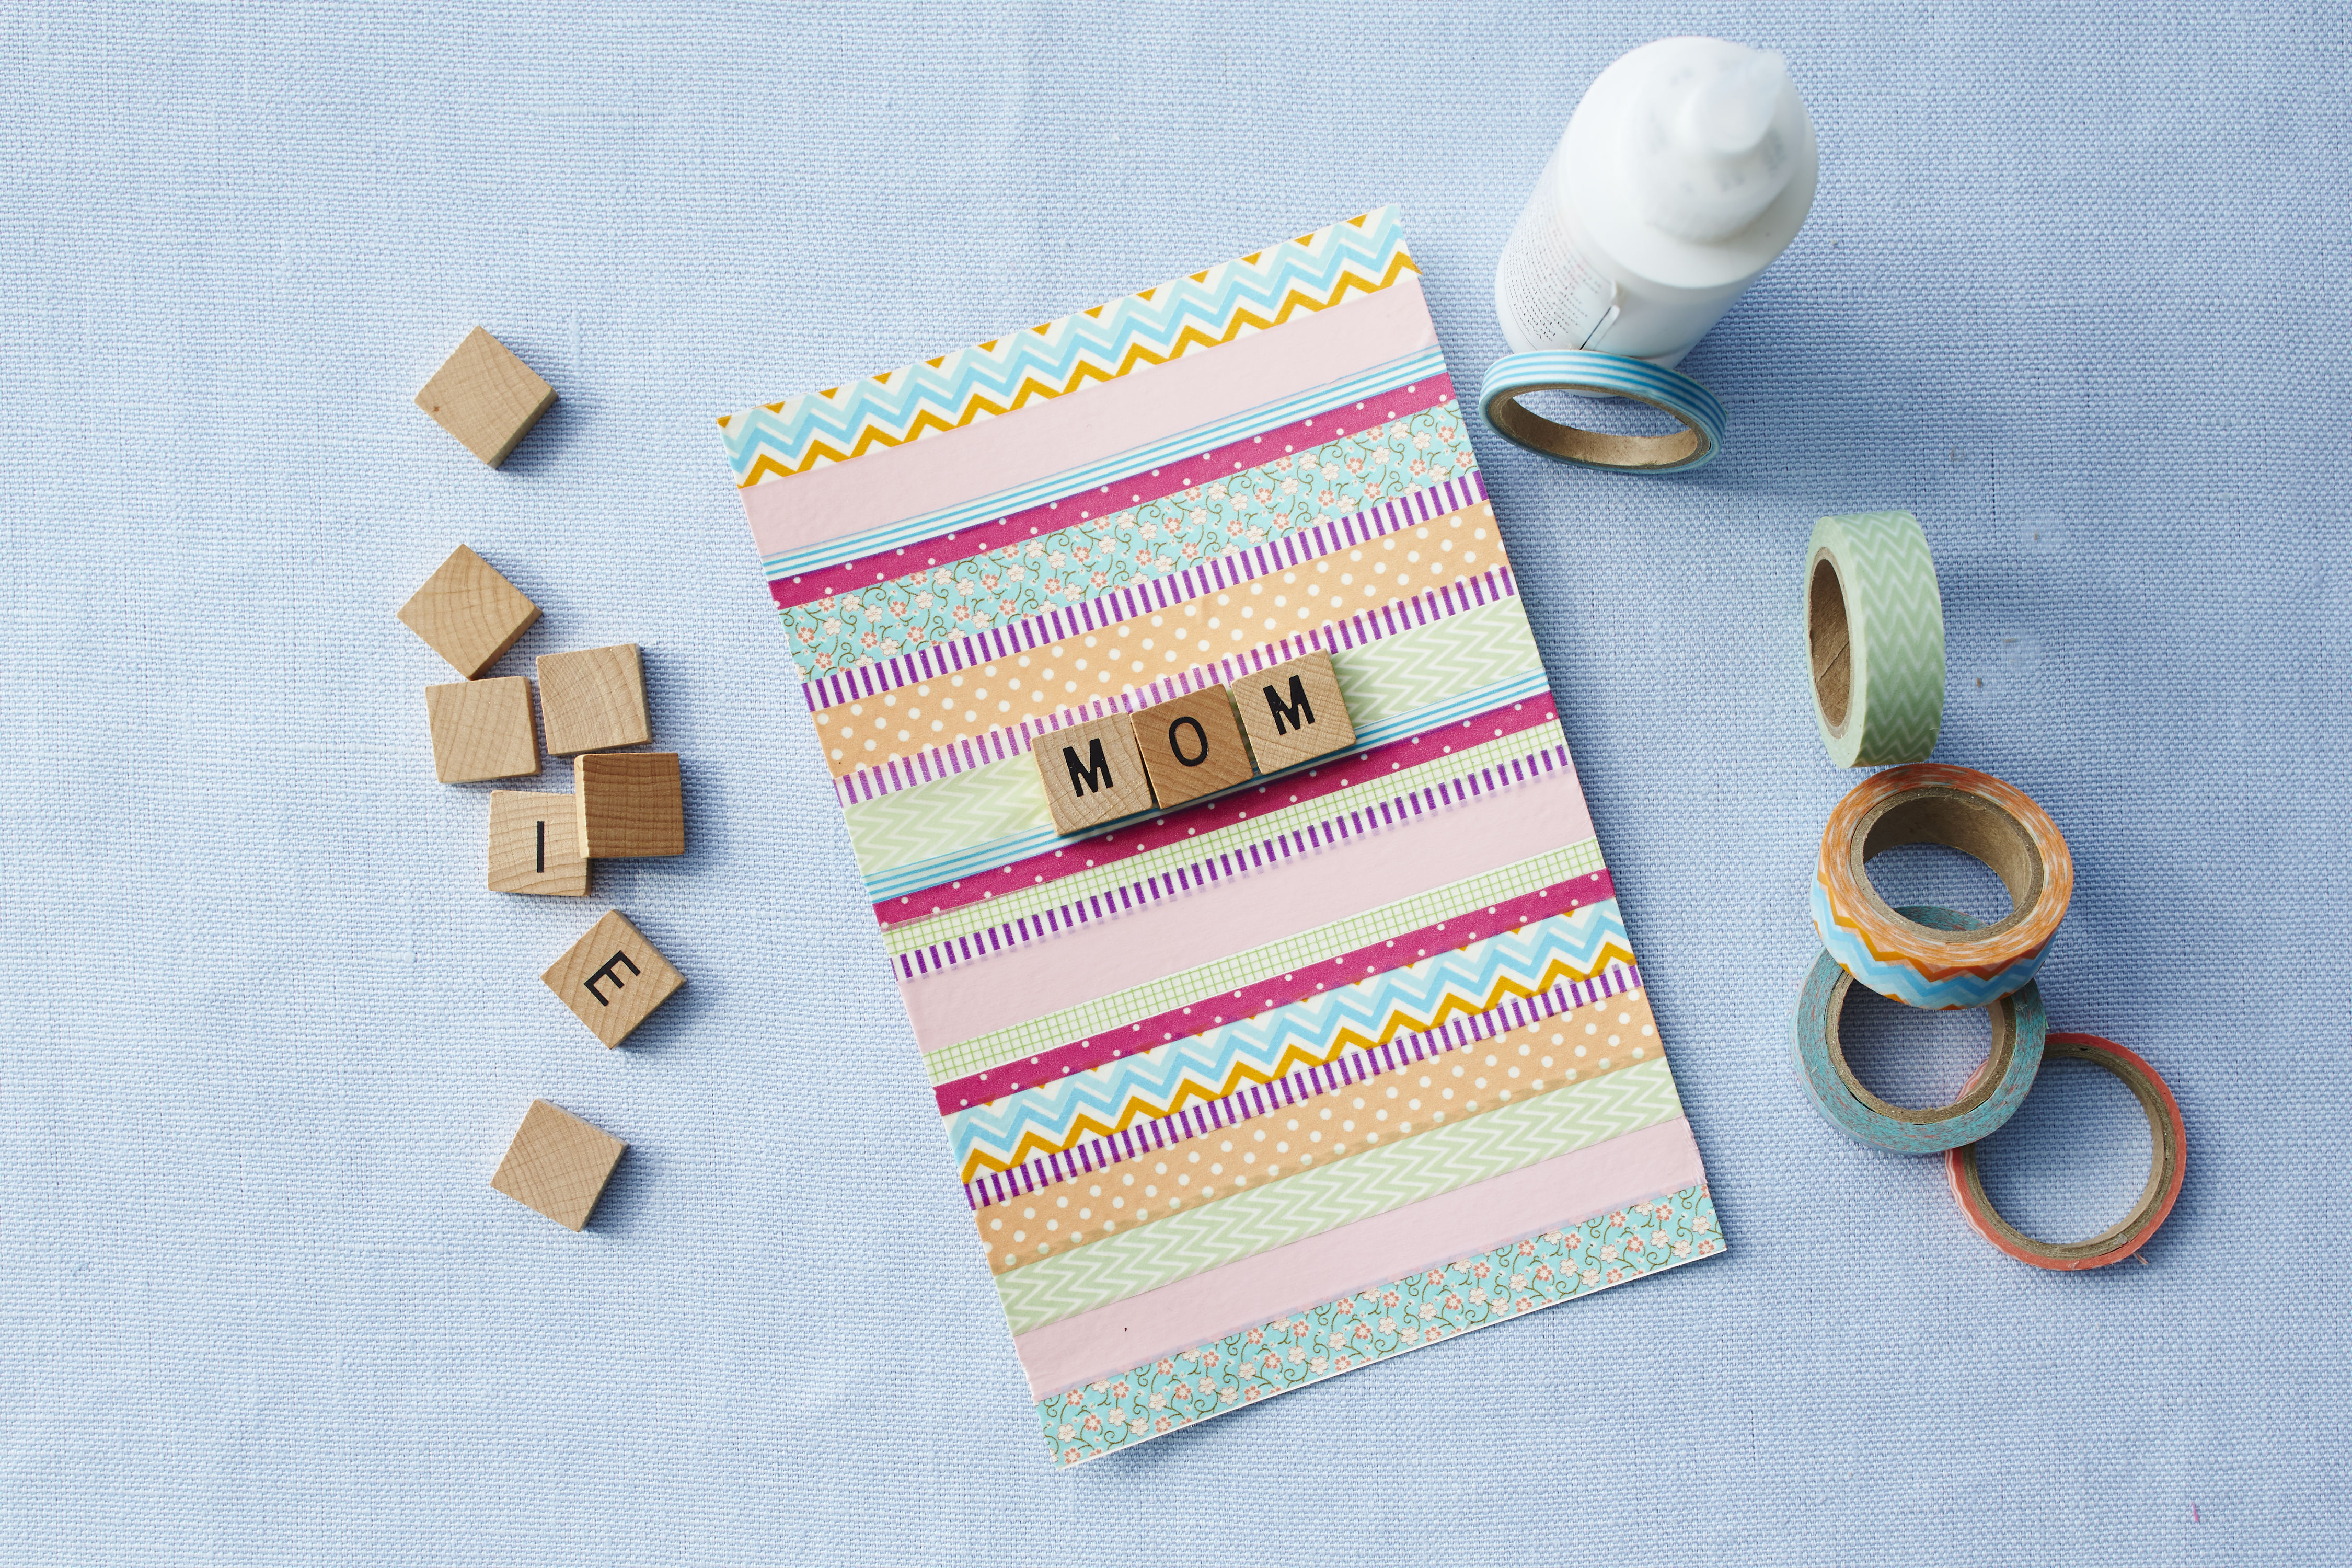 If Your Mom is the Reigning Queen of Scrabble, She Will Love This Mother's Day Card